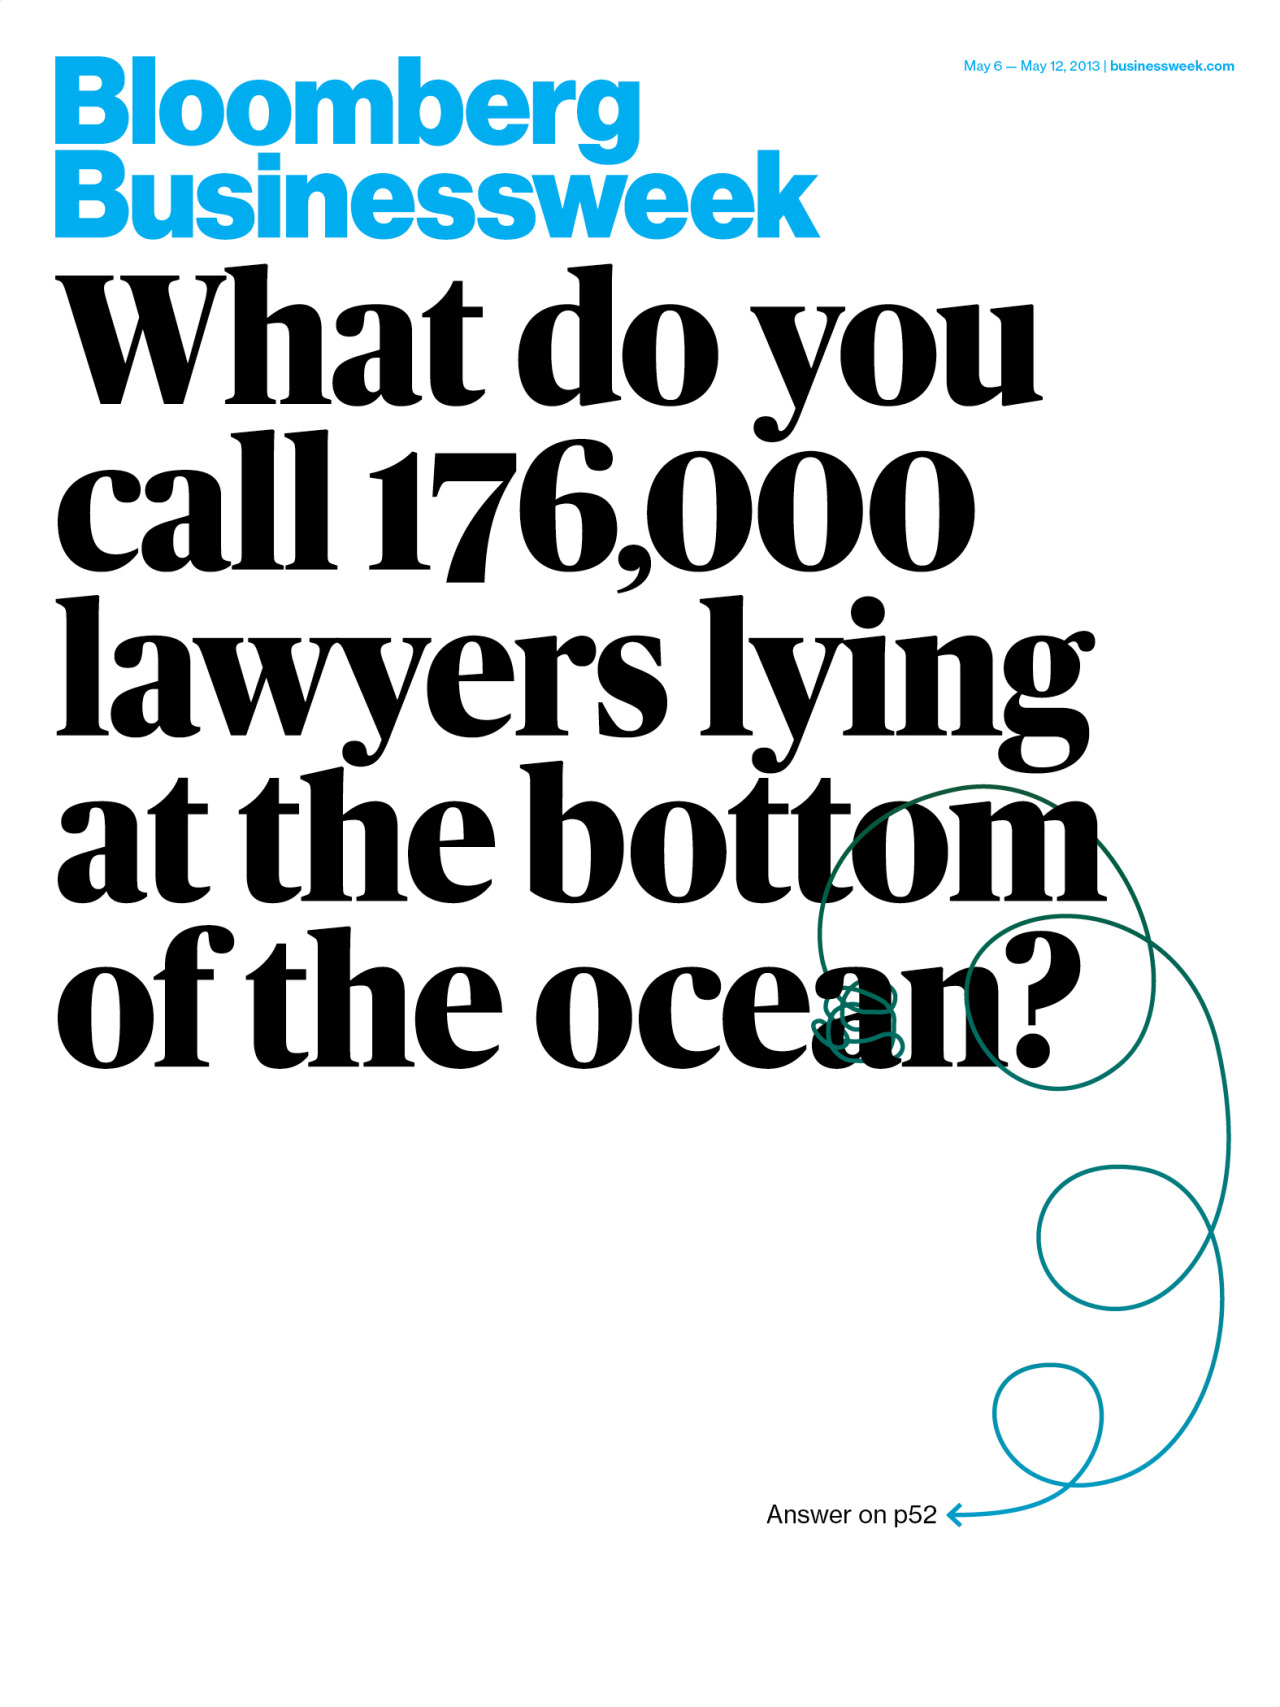 What Do you Call 176,000 Lawyers lying at the bottom of the ocean?Type by Christian Schwartz